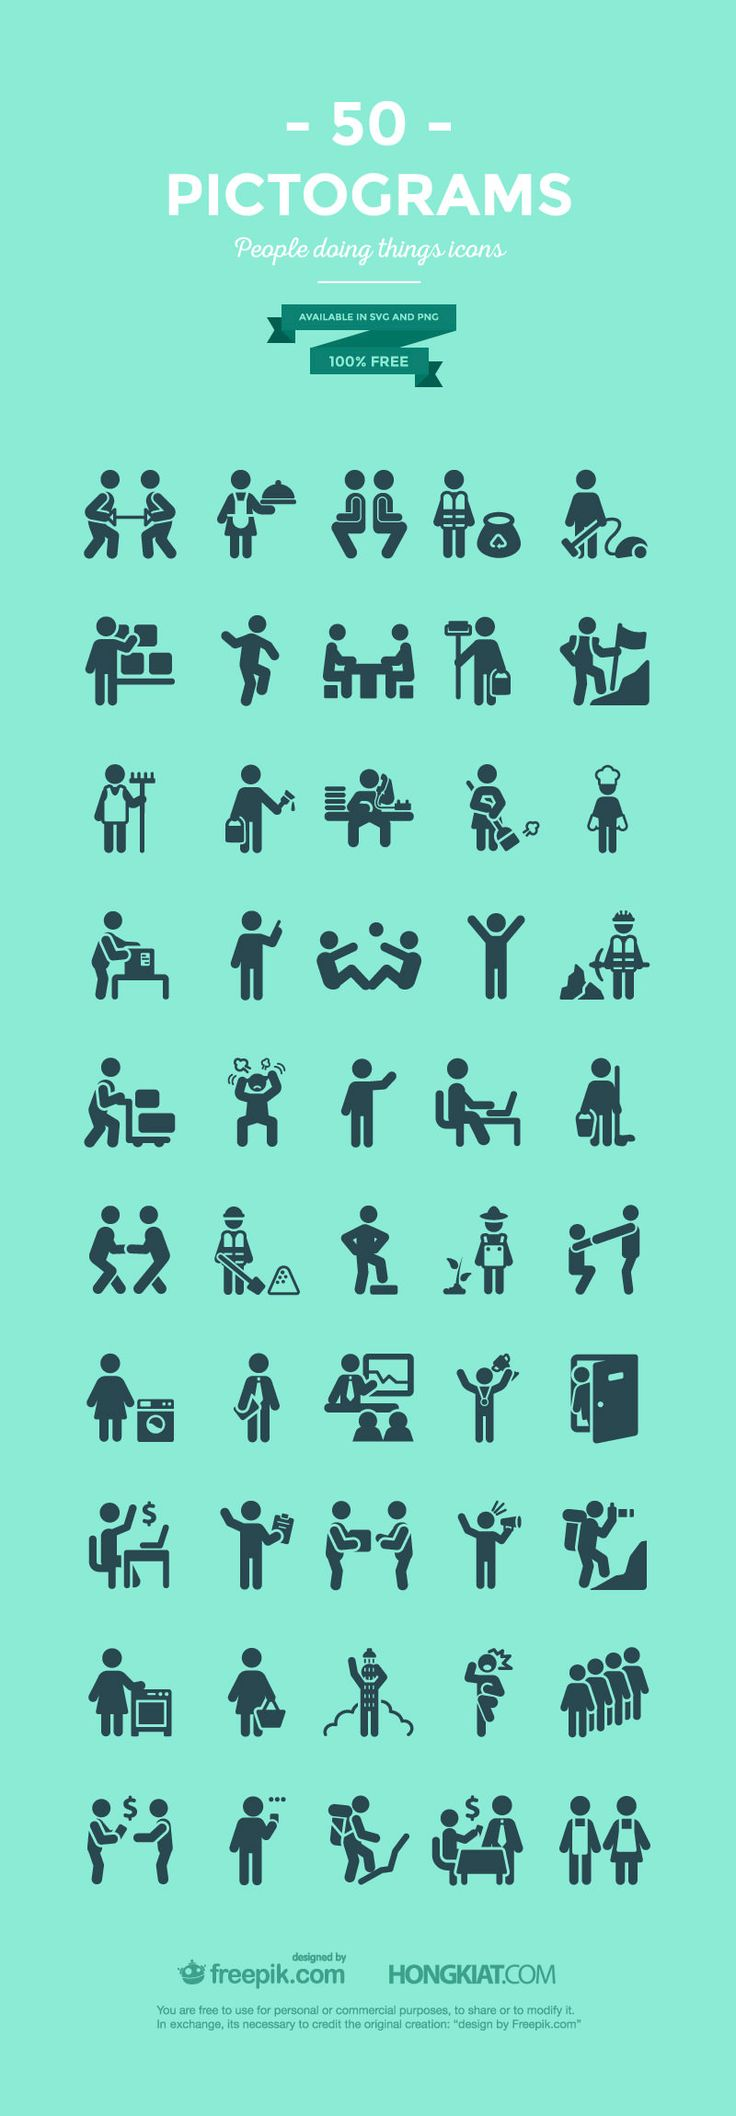 Free Pictogram Icons of Everyday Life